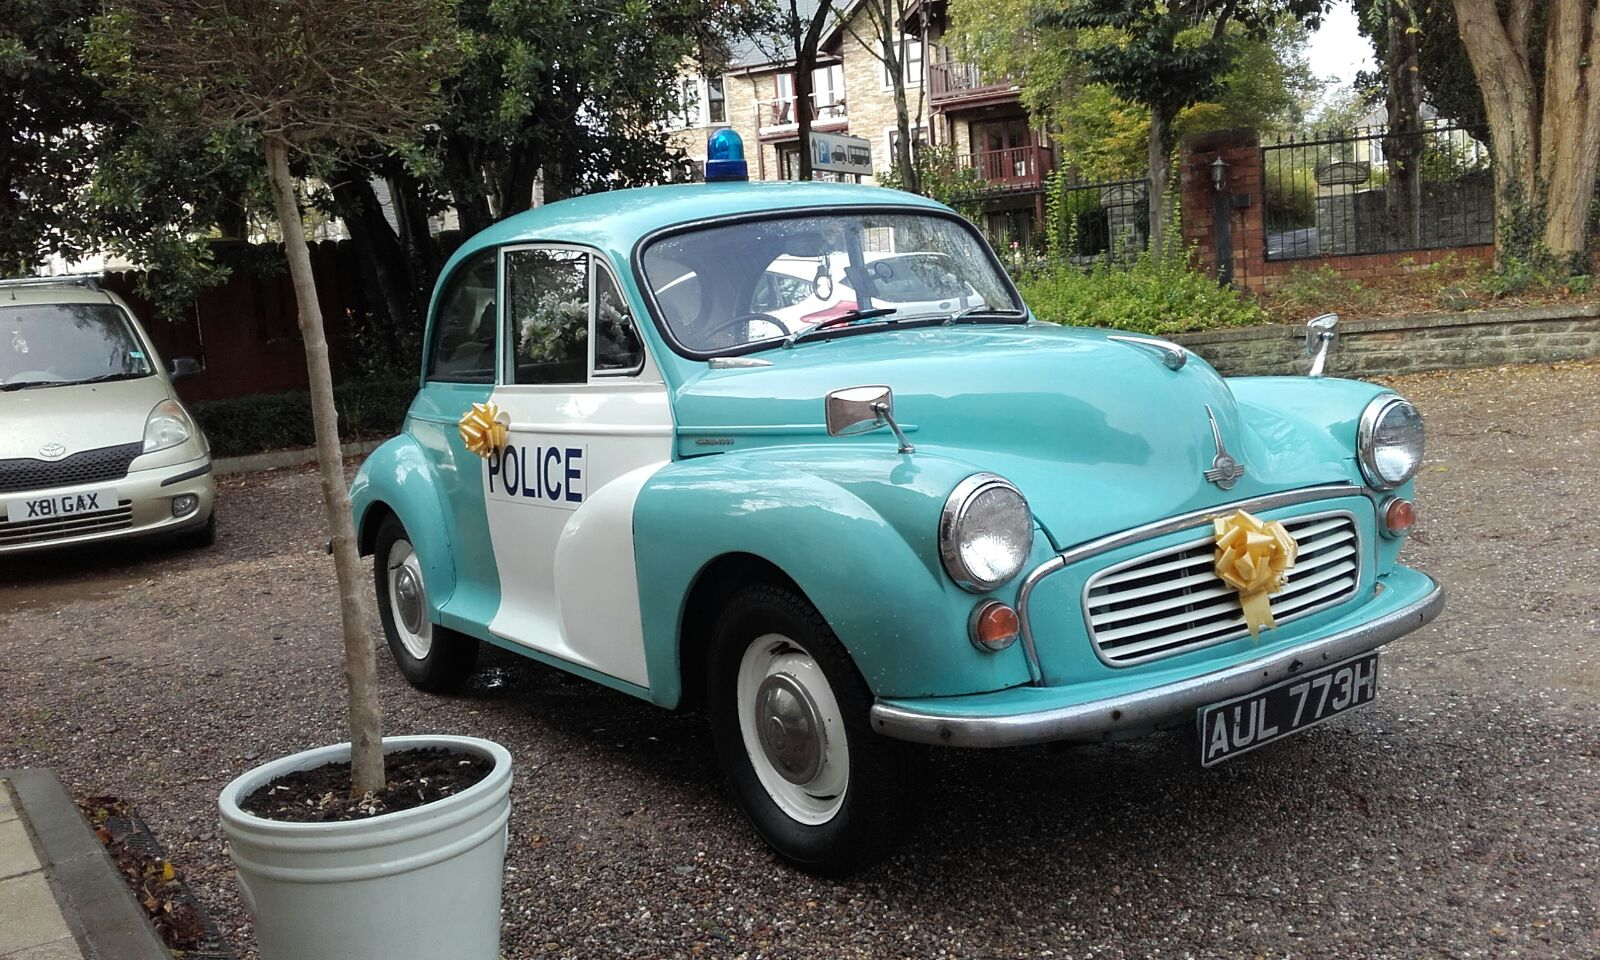 Police Car Hire